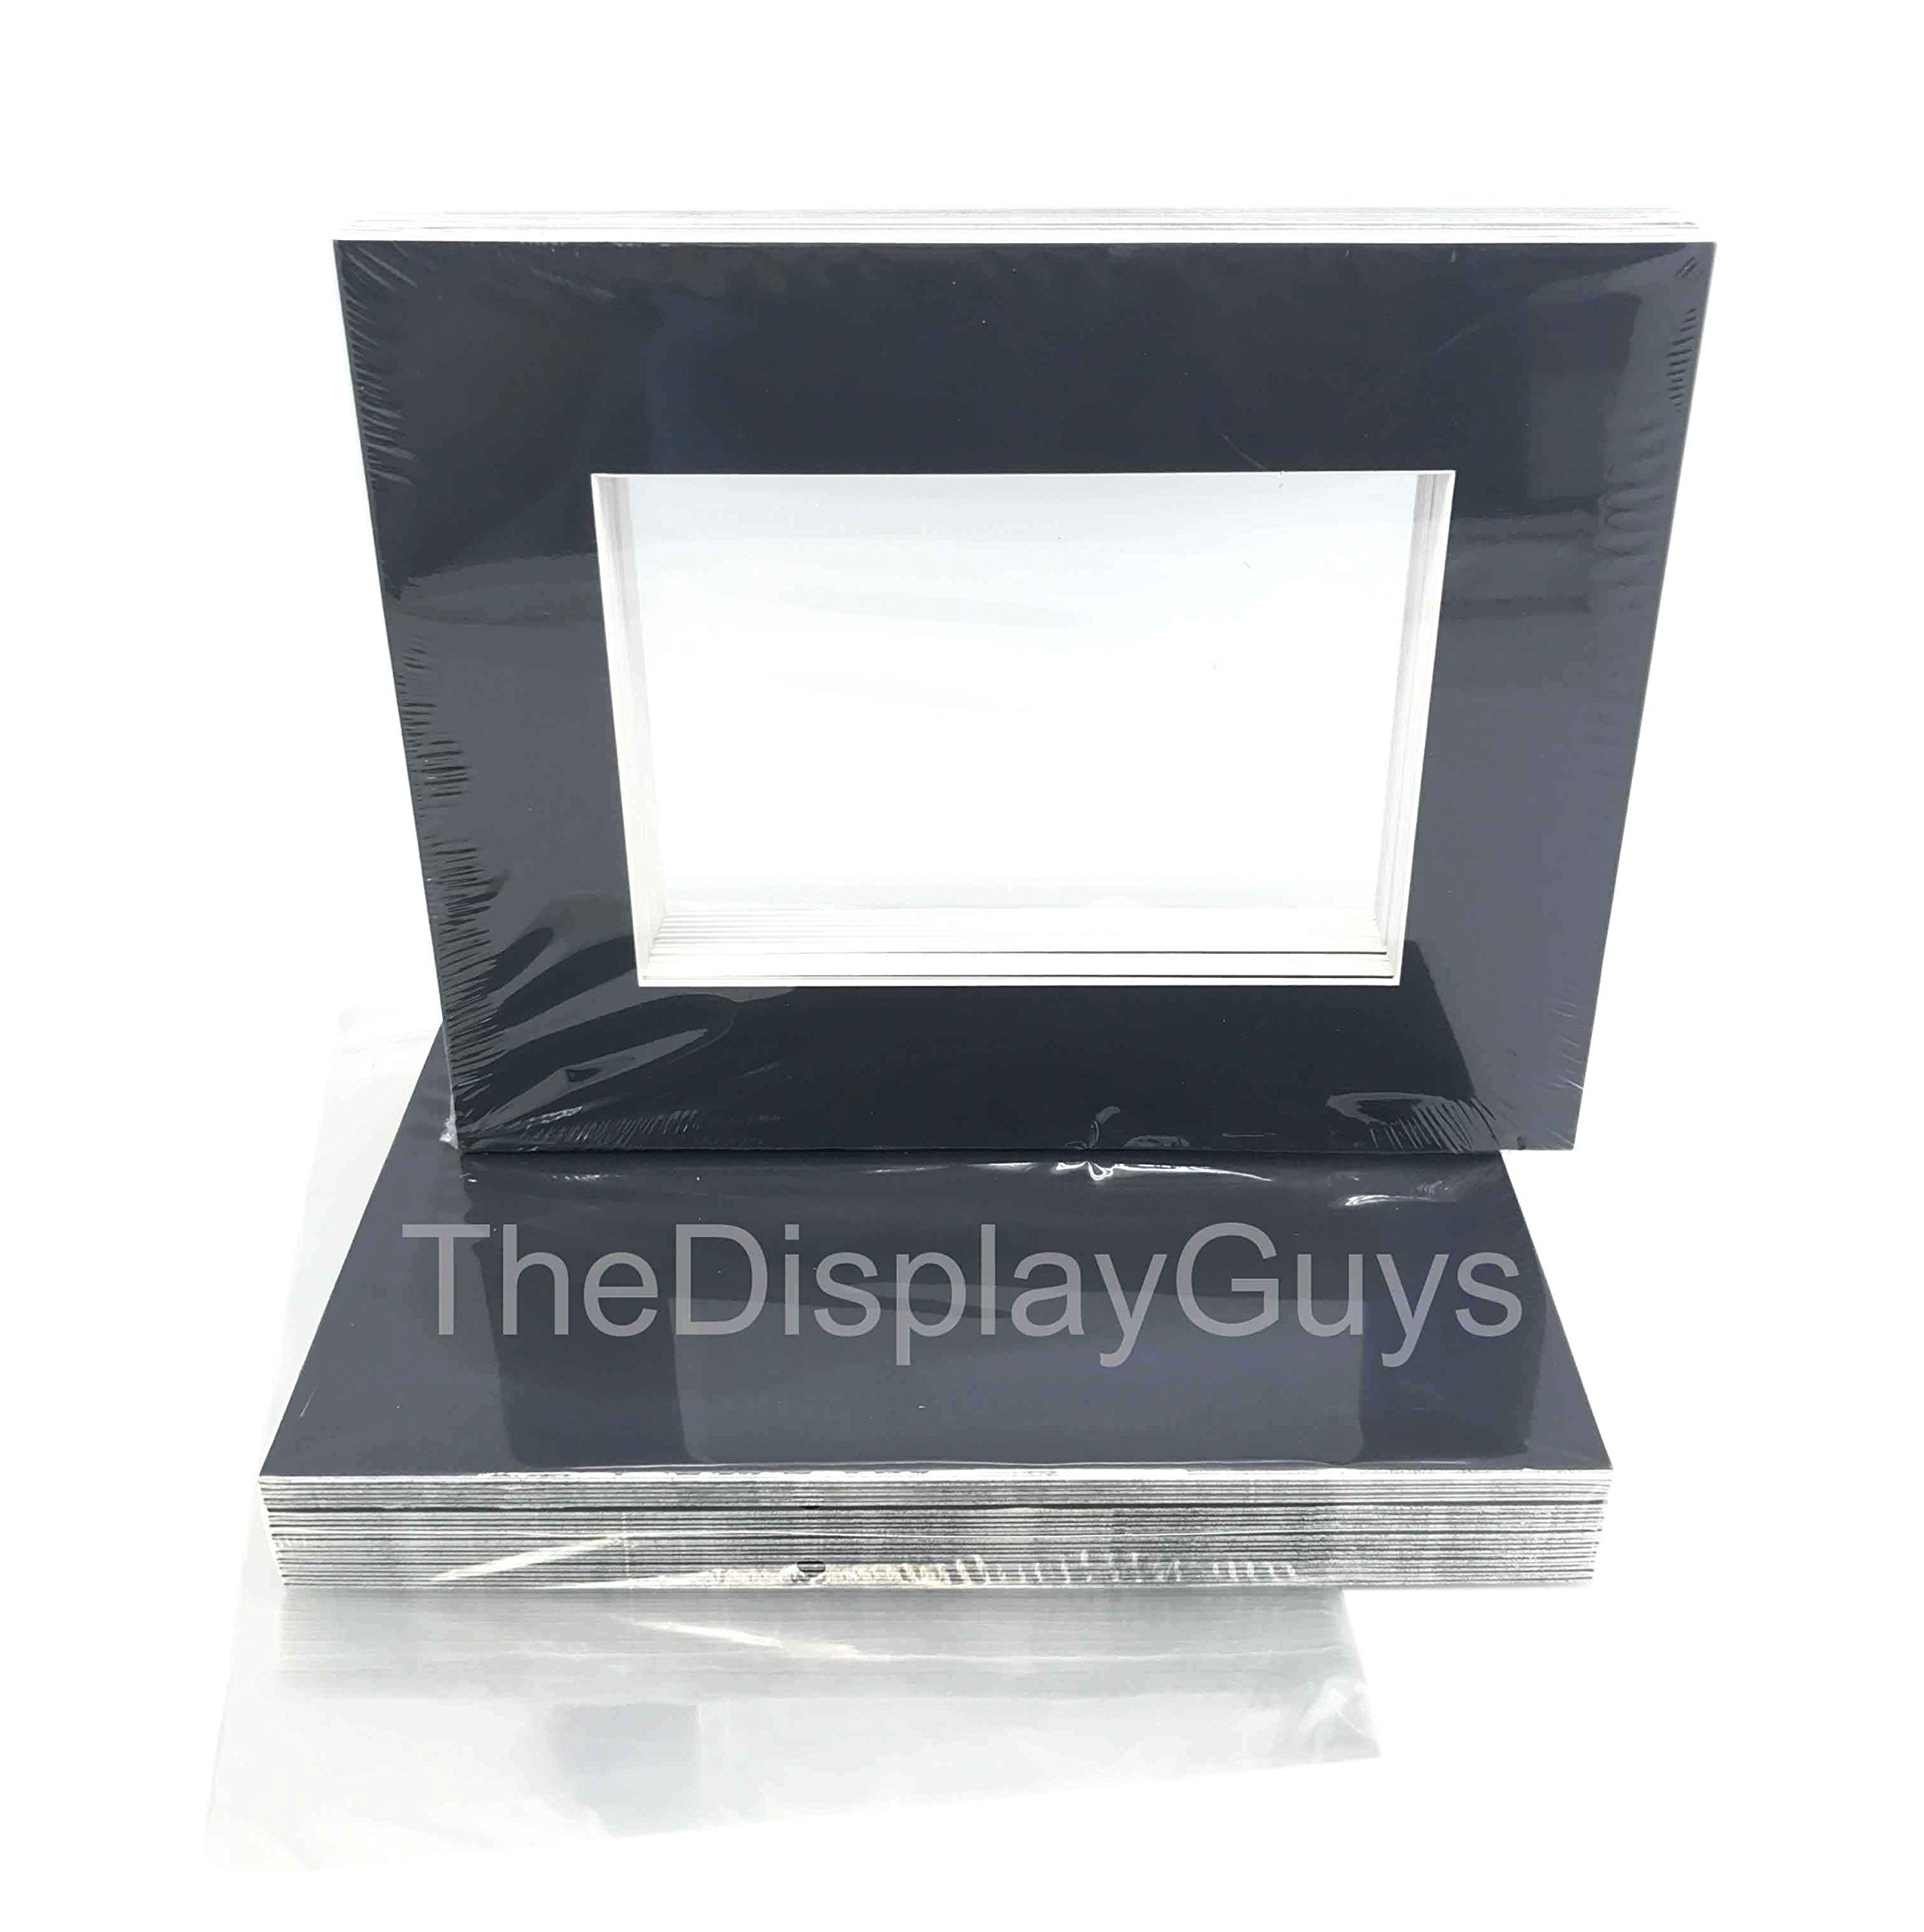 The Display Guys, 25 Sets 5x7'' inches Black Picture Photo Matting Mats Boards (White Core Bevel Cut) + Black Back Boards + Clear Plastic Bags (25 pcs Black Complete Set)